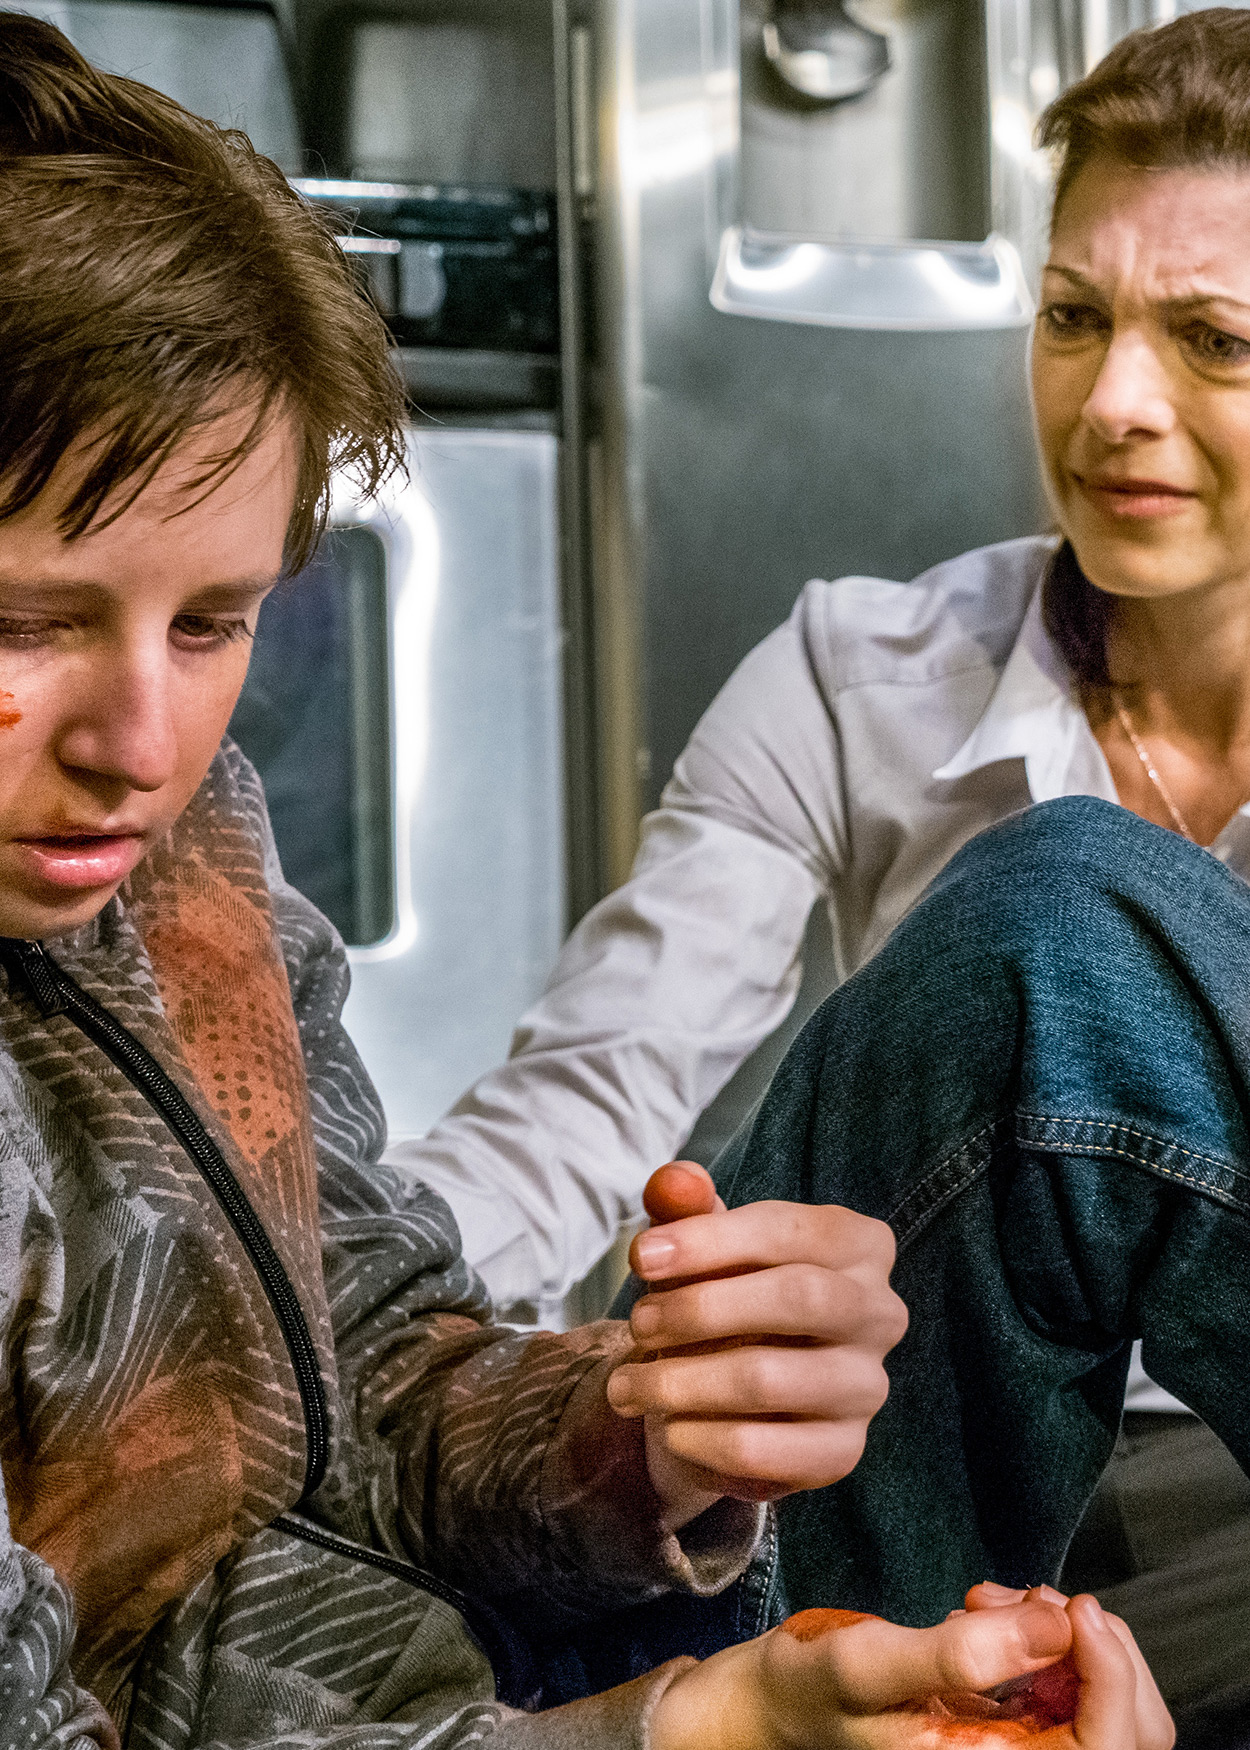 Production Photo from The Beautiful Dark (2013). A wounded boy sits on the floor of a kitchen and an older woman comforts him.